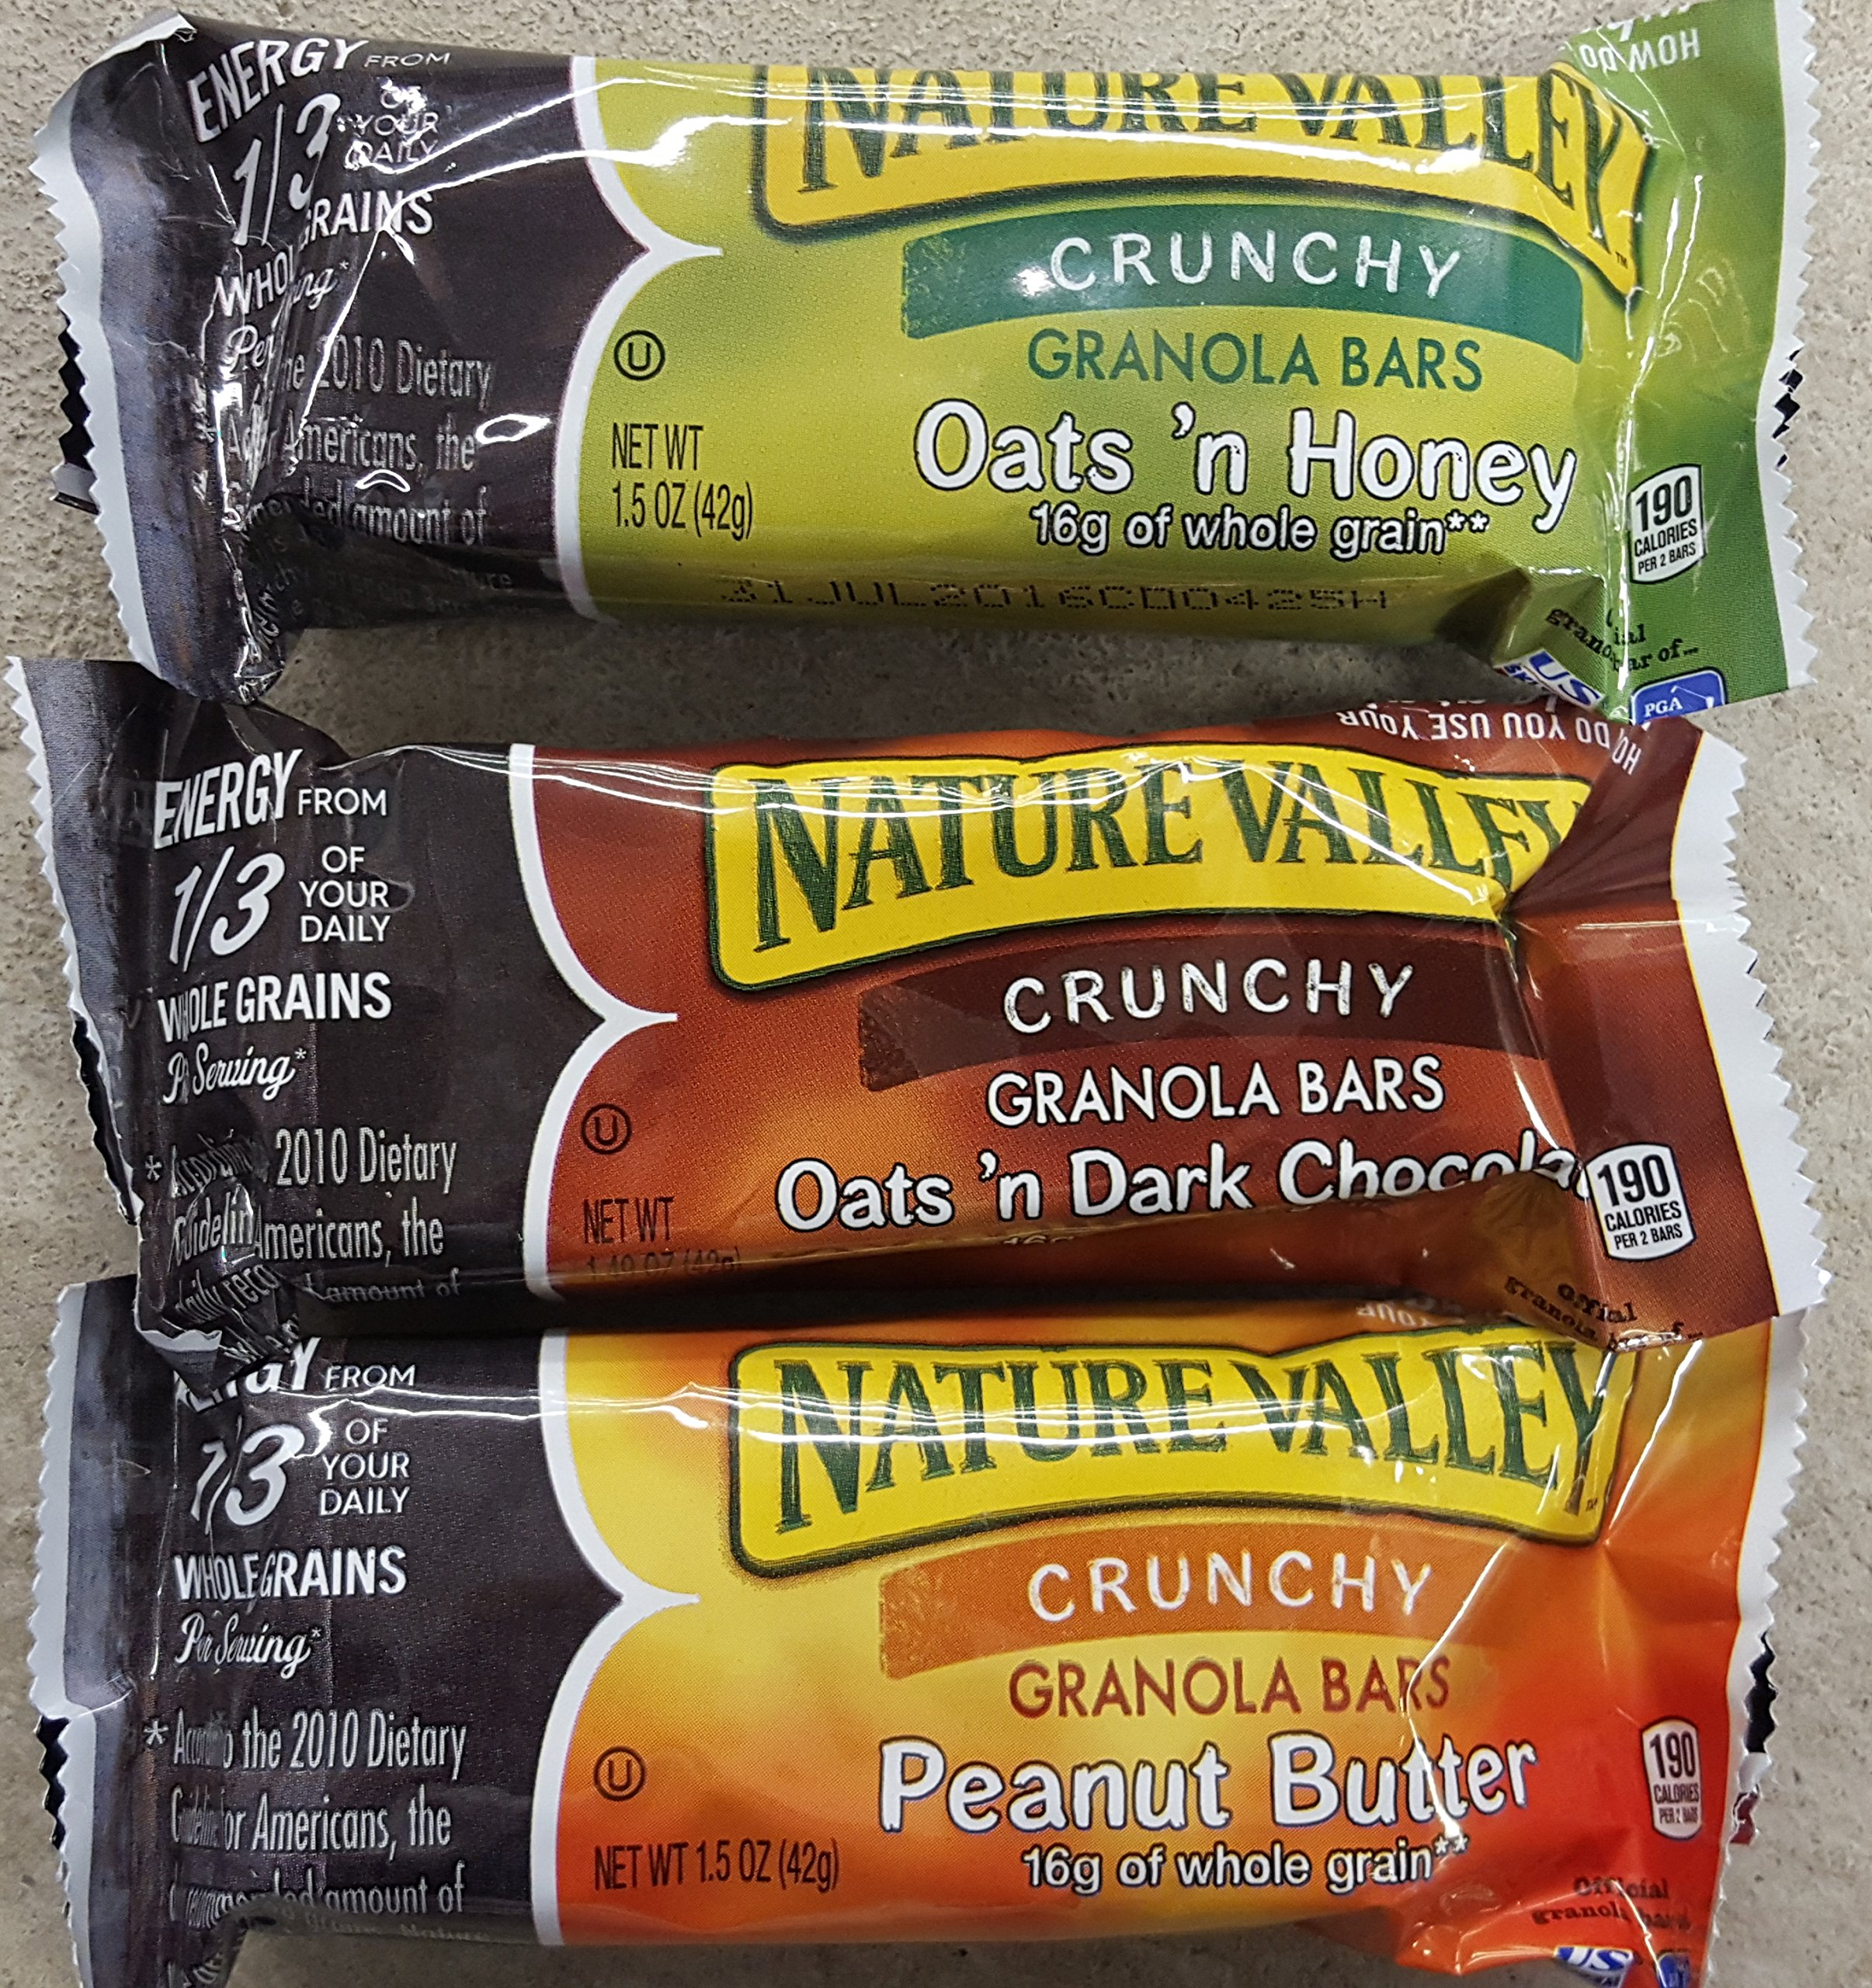 Nature Valley Granola Bars Variety Pack, 30 Pouches, 2 Bars per Pouch = 60 Bars